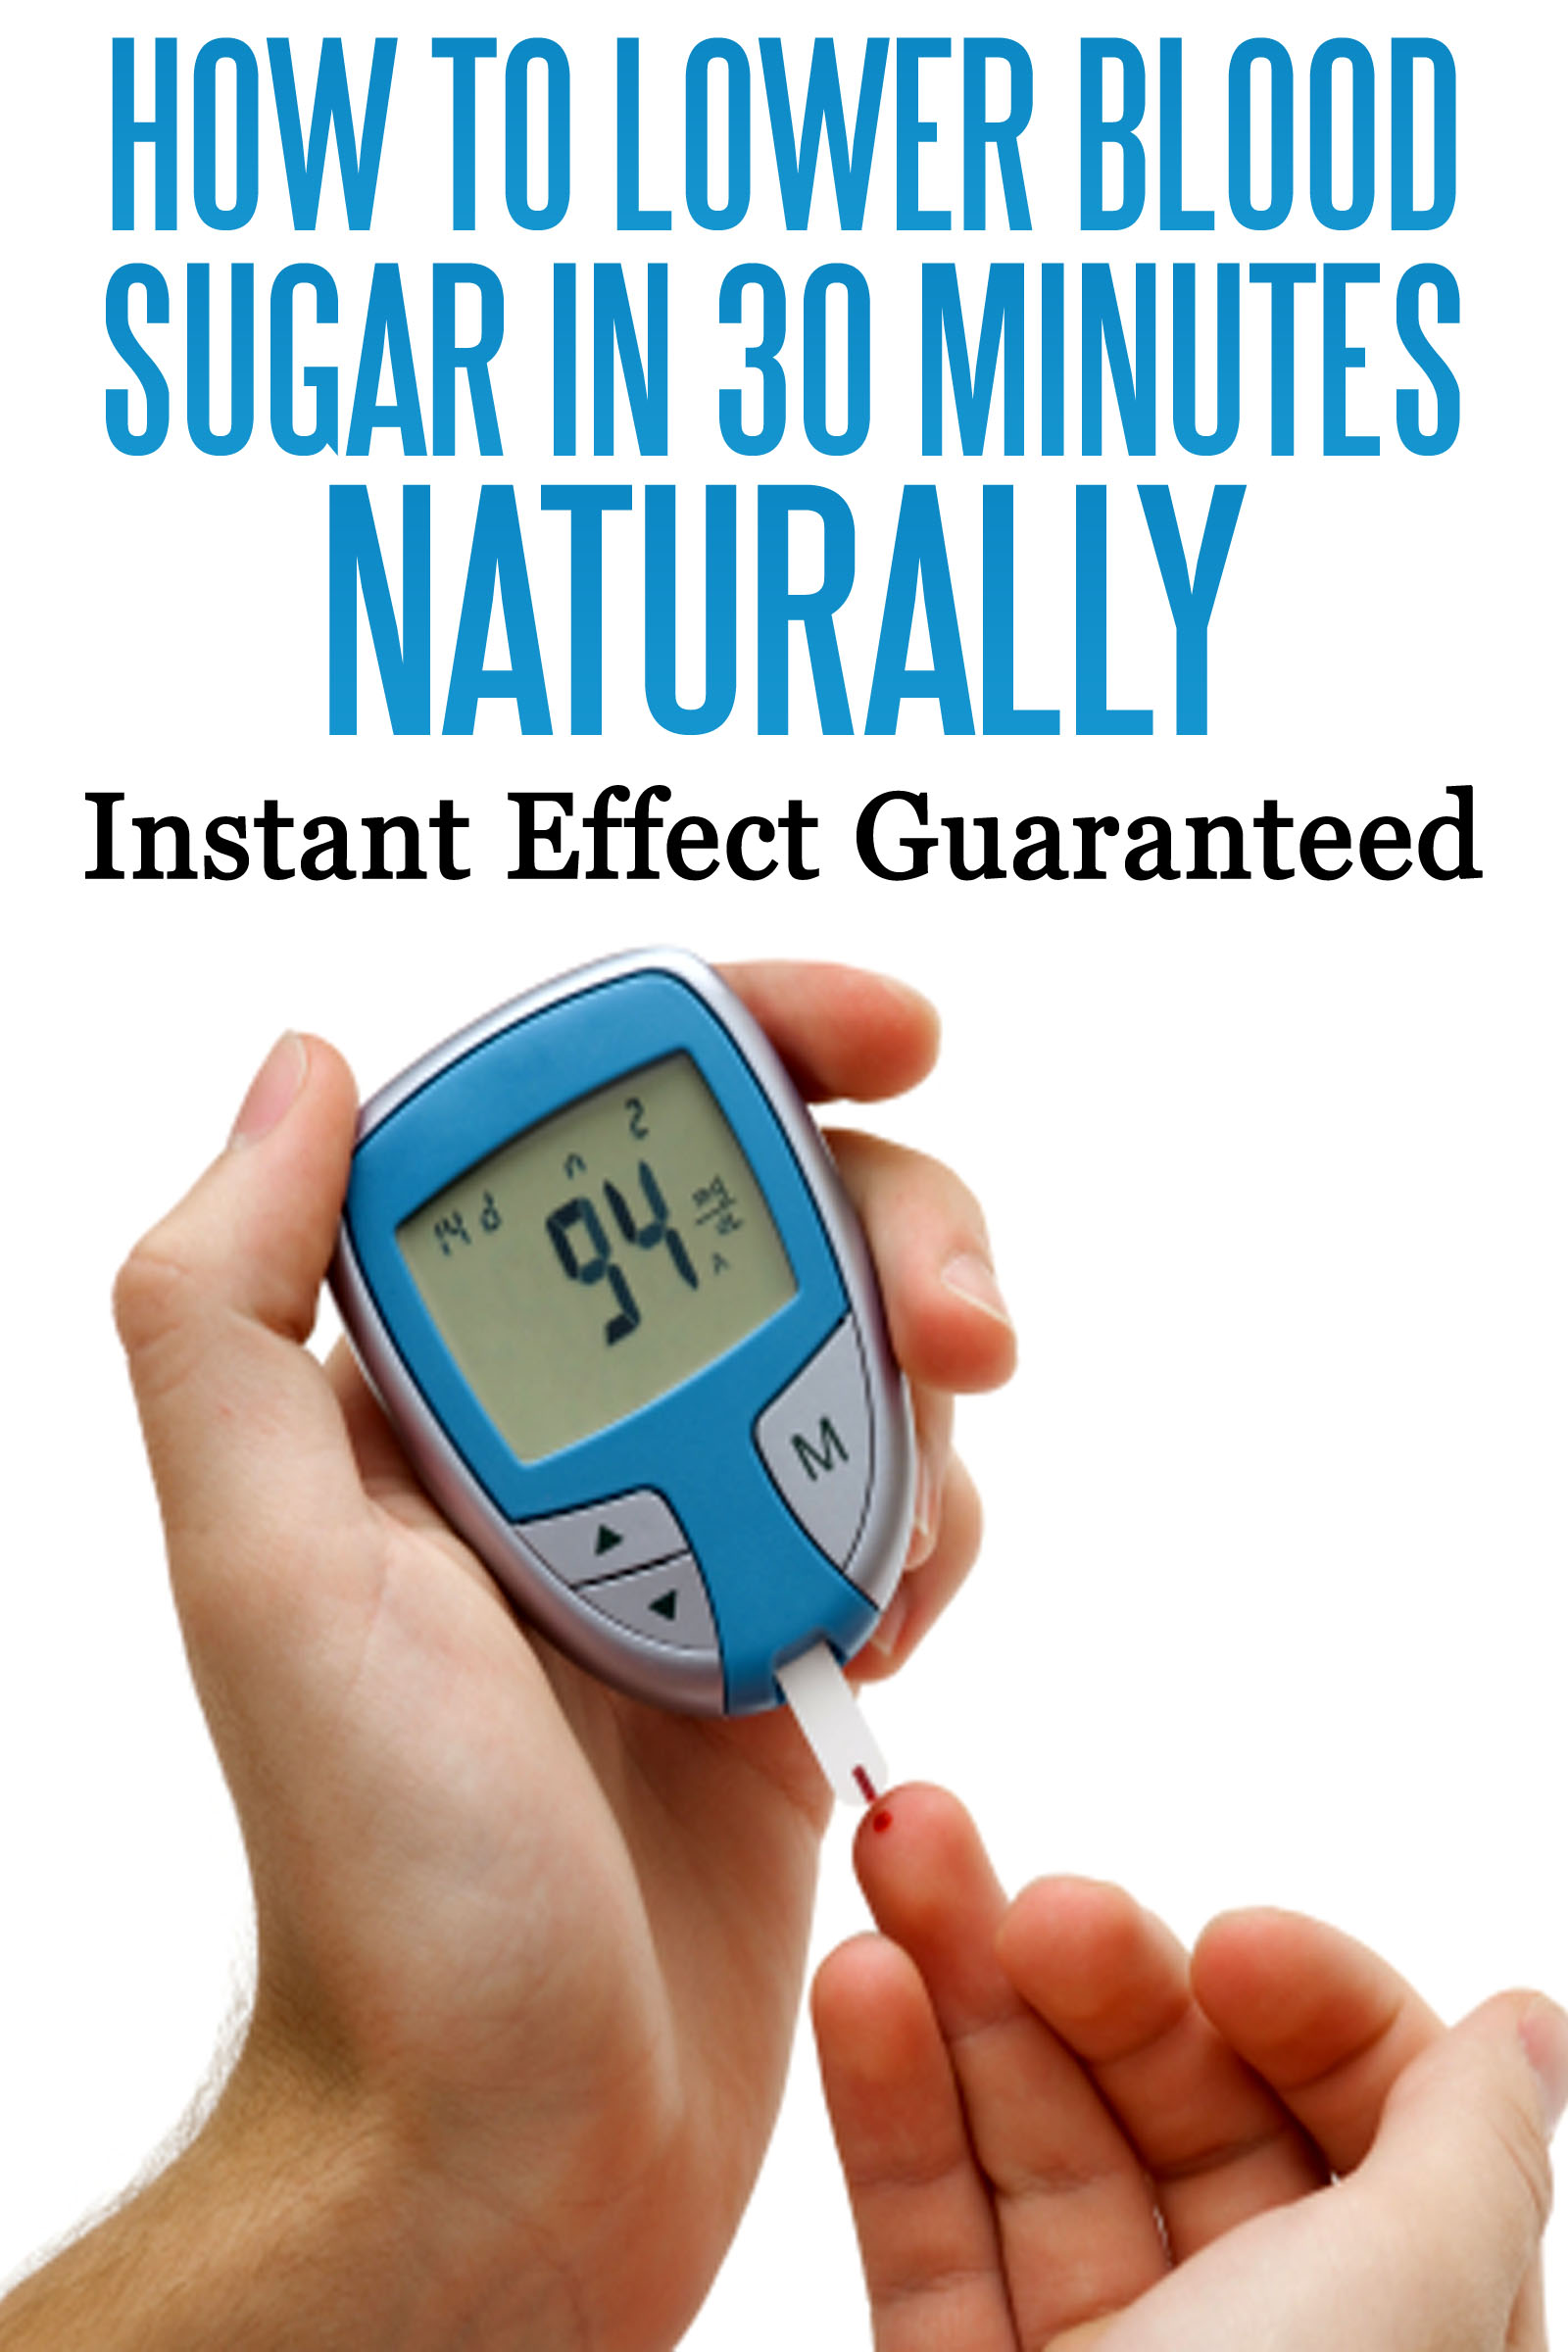 Can I Lower My Blood Sugar Naturally